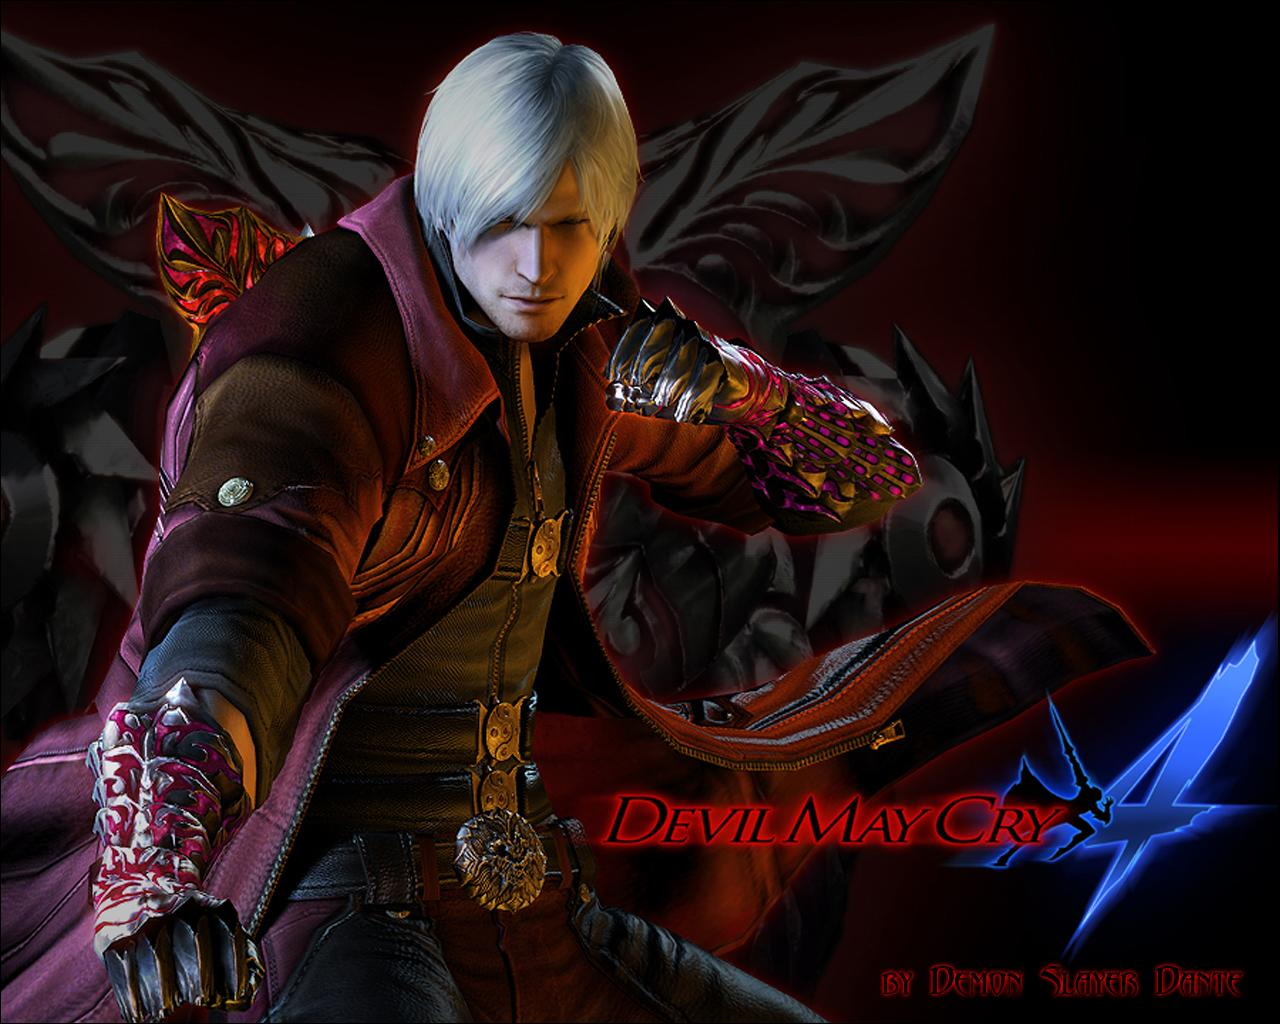 Desktop Wallpapers Dante Devil May Cry Devil May Cry 4 Games